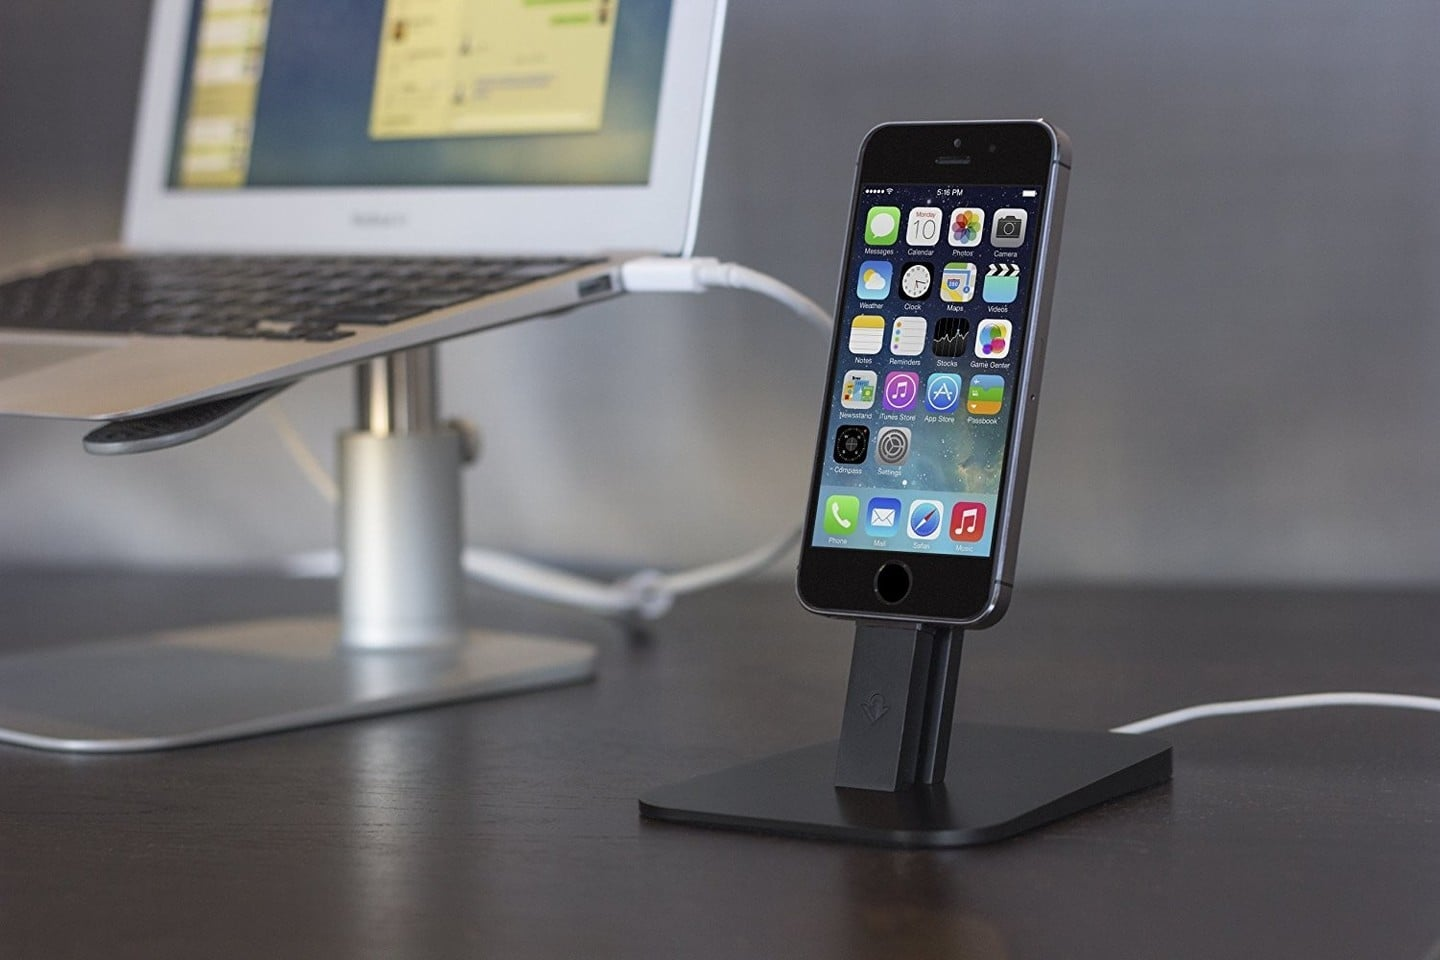 Get a Twelve South HiRise Dock for your iPhone or iPad for just $17